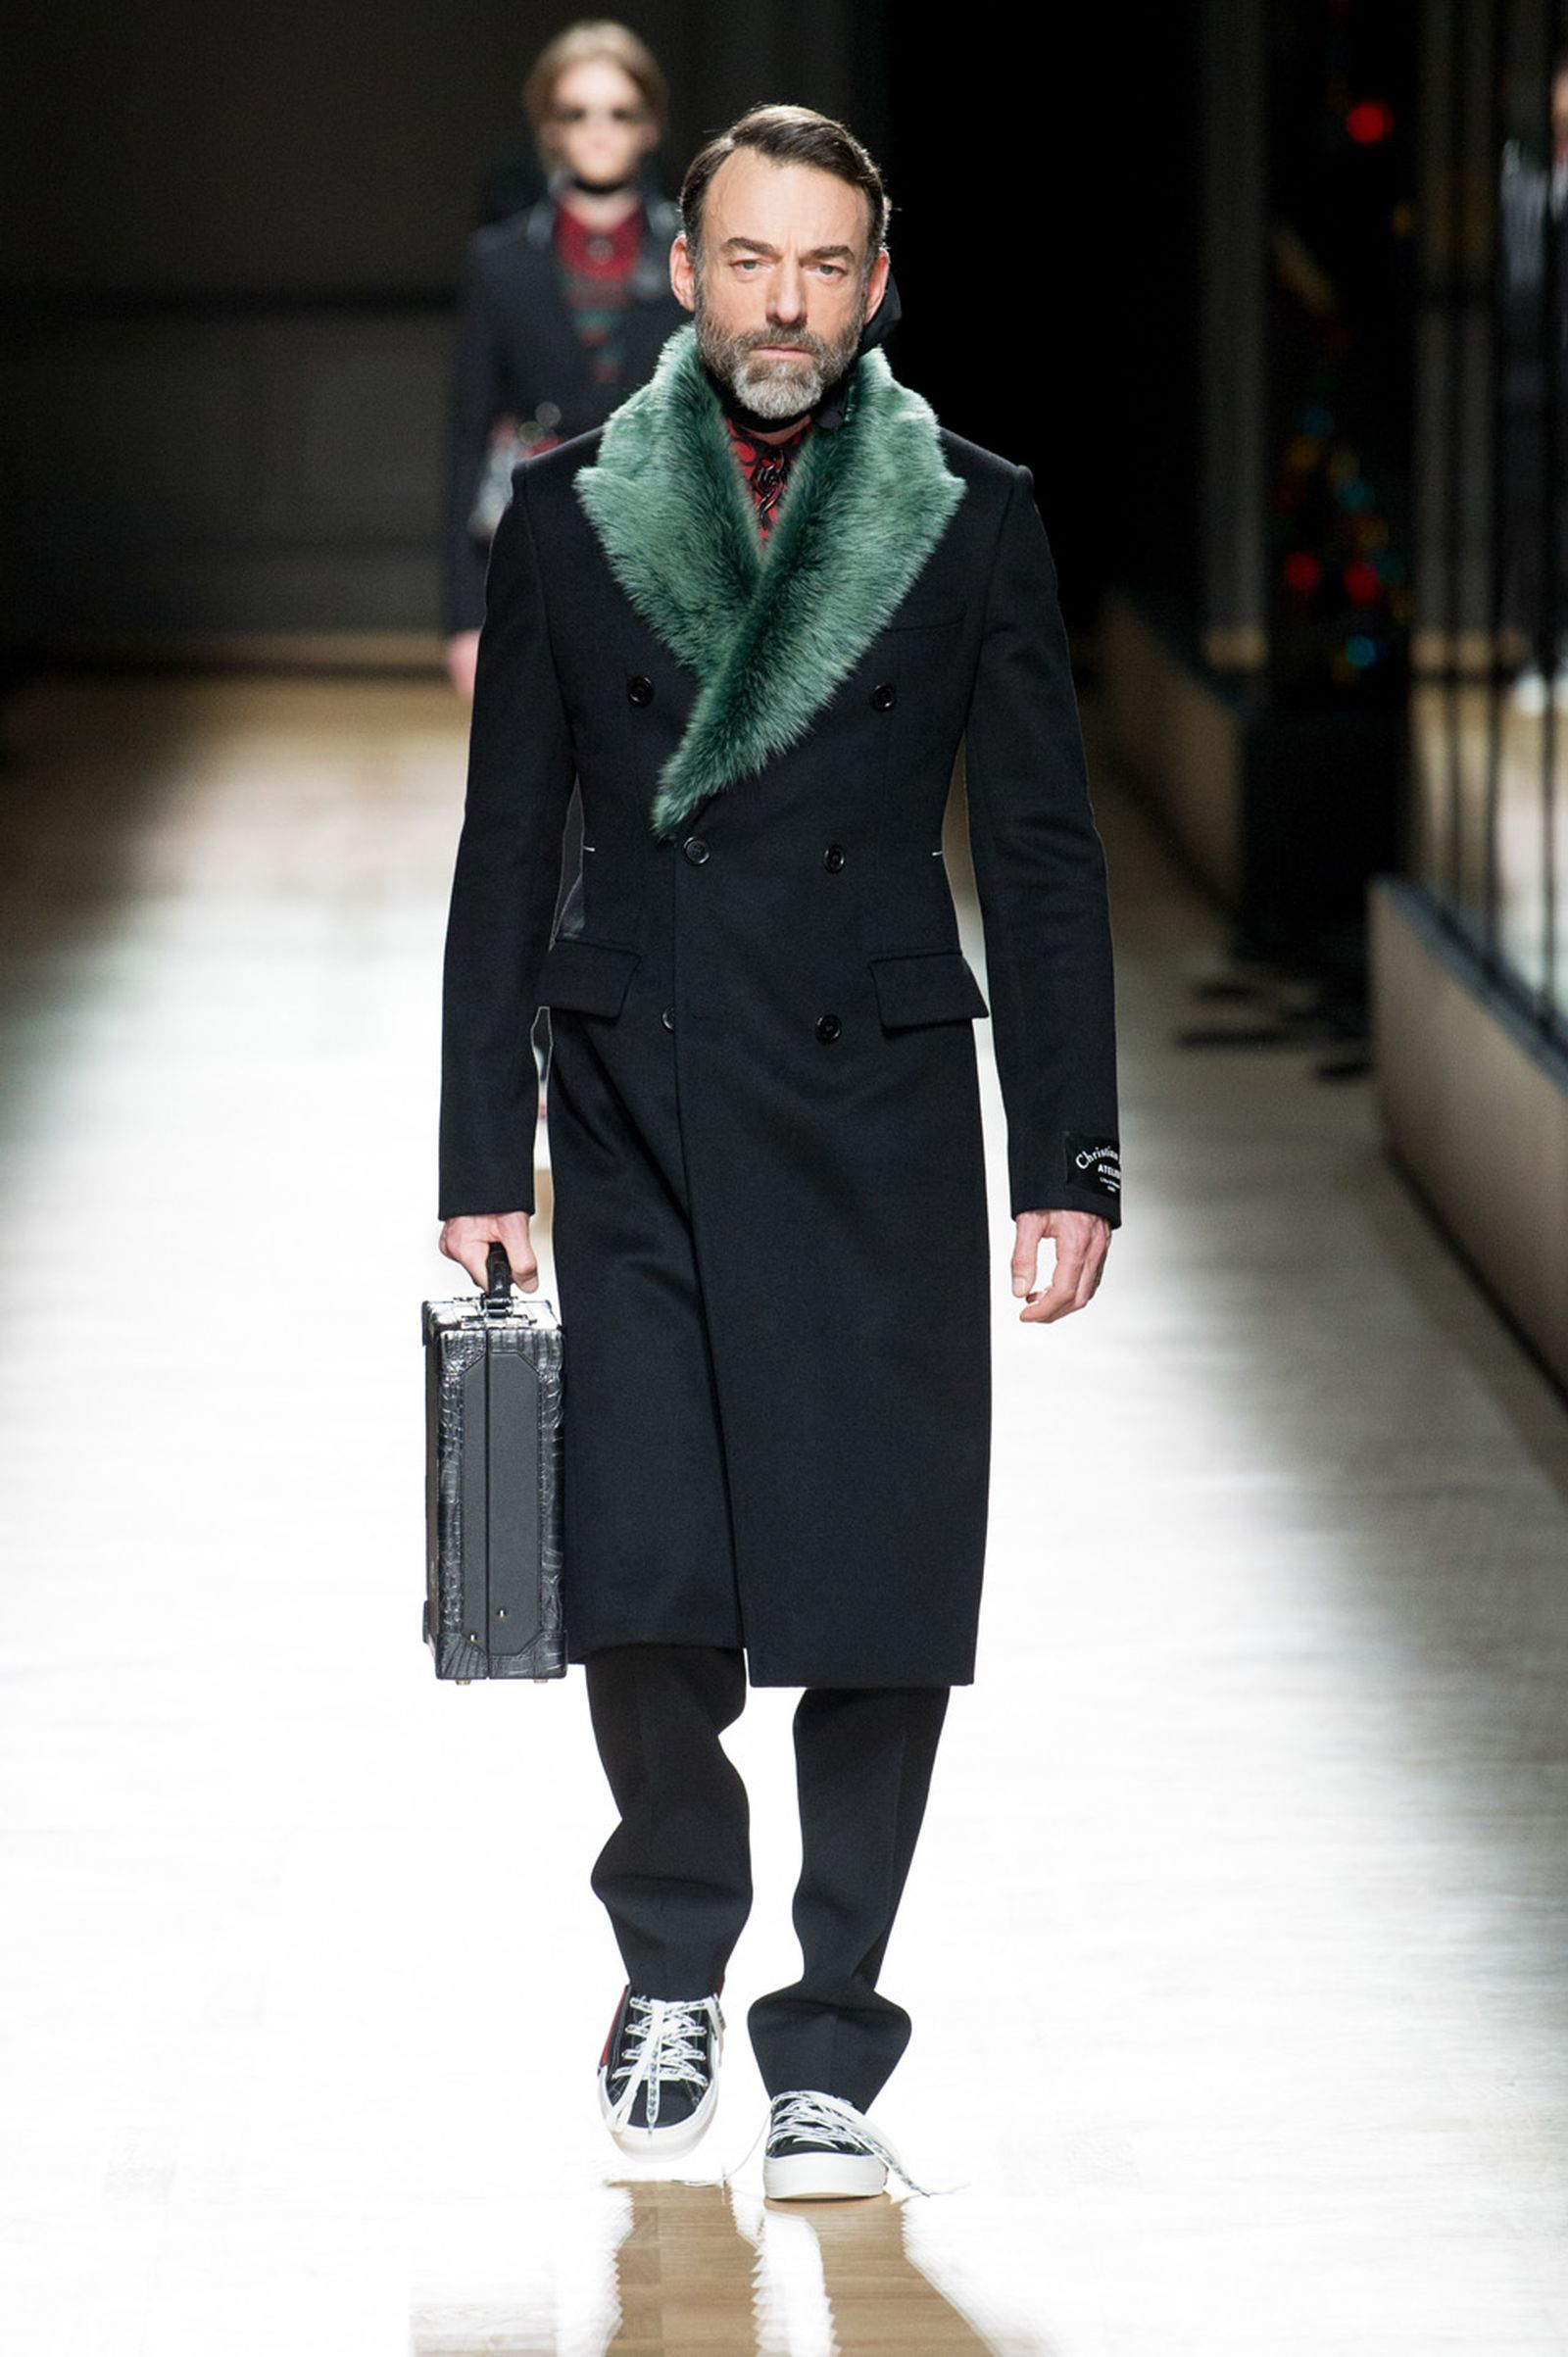 DIOR HOMME WINTER 18 19 BY PATRICE STABLE look14 Fall/WInter 2018 runway